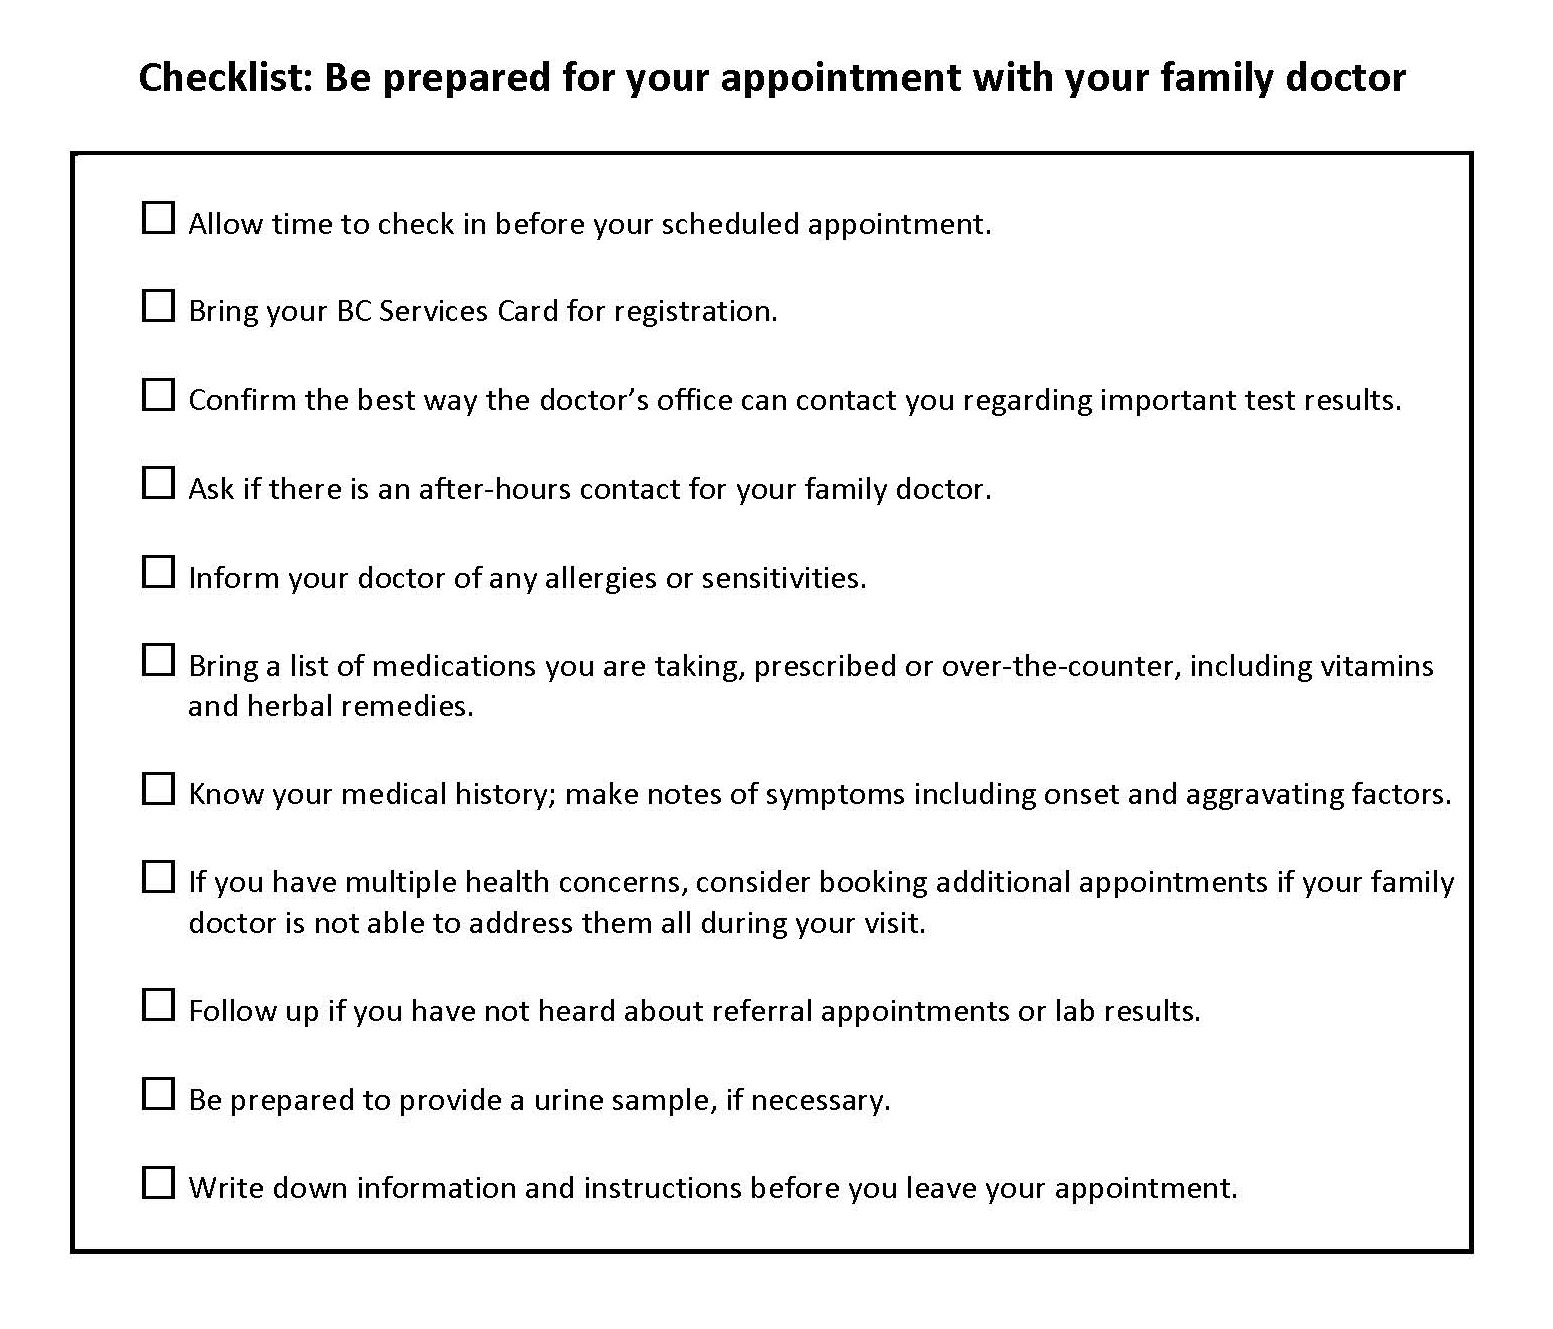 Checklist_be prepared for your appointment.jpg